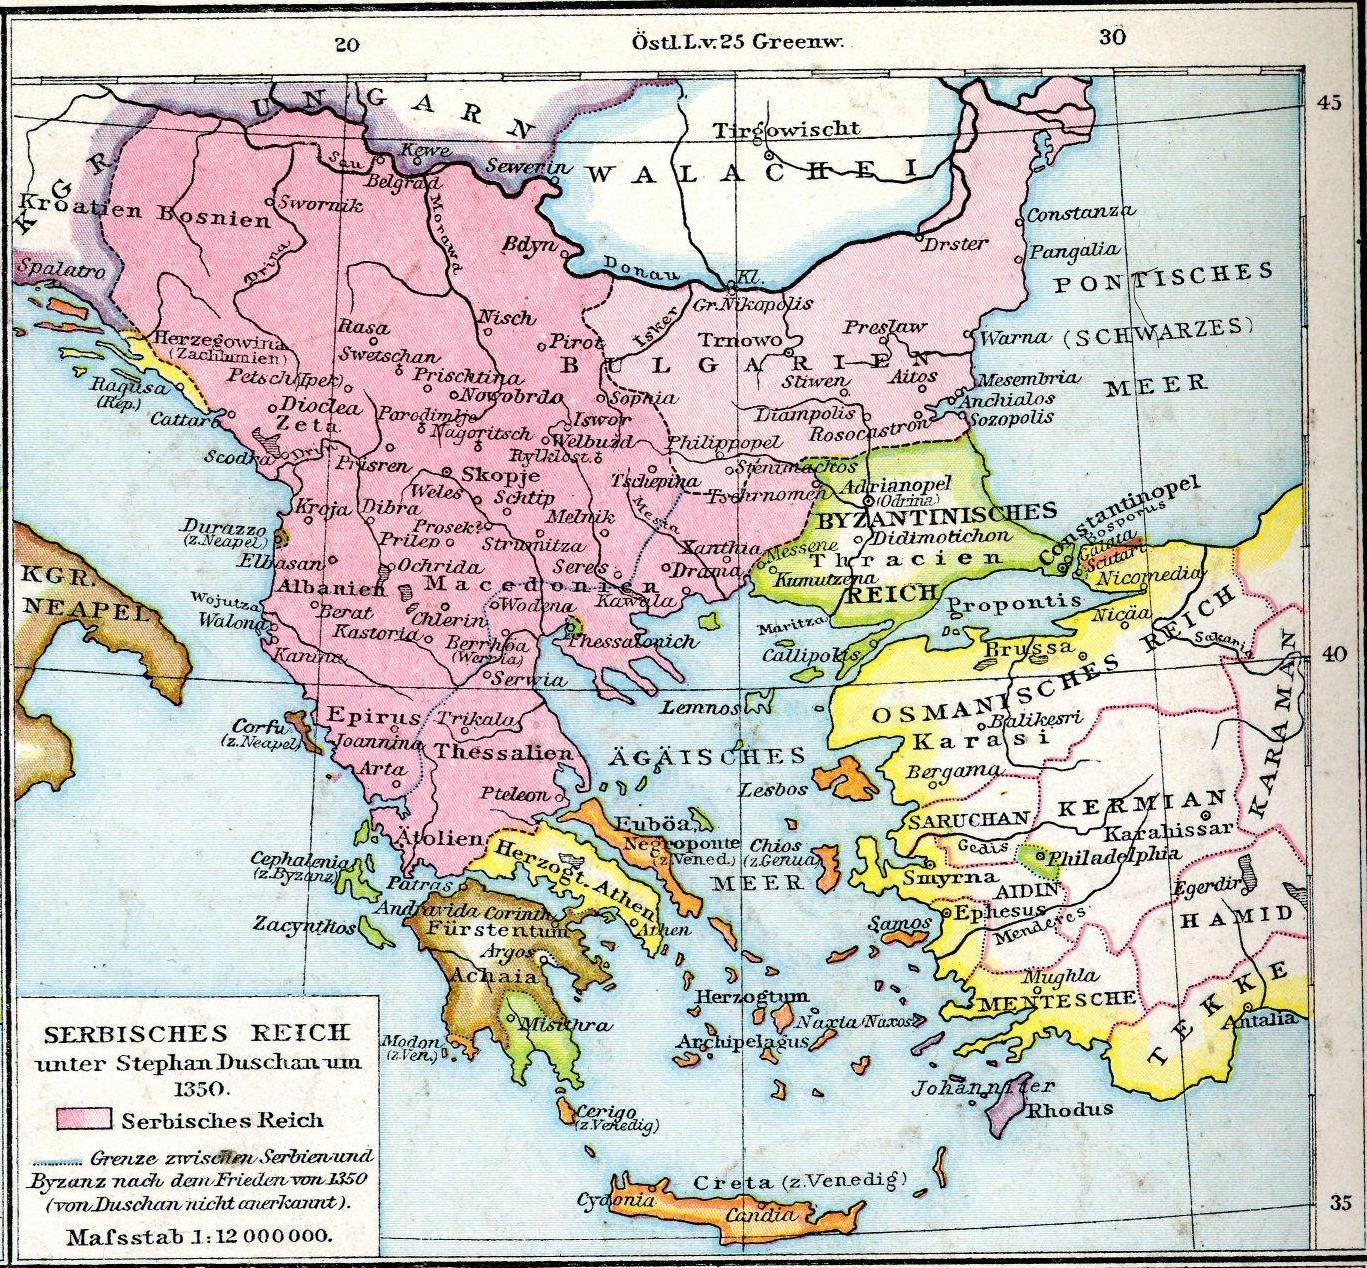 File:Balkans in 1350 according to Gustav Droysen from 19th century.jpg